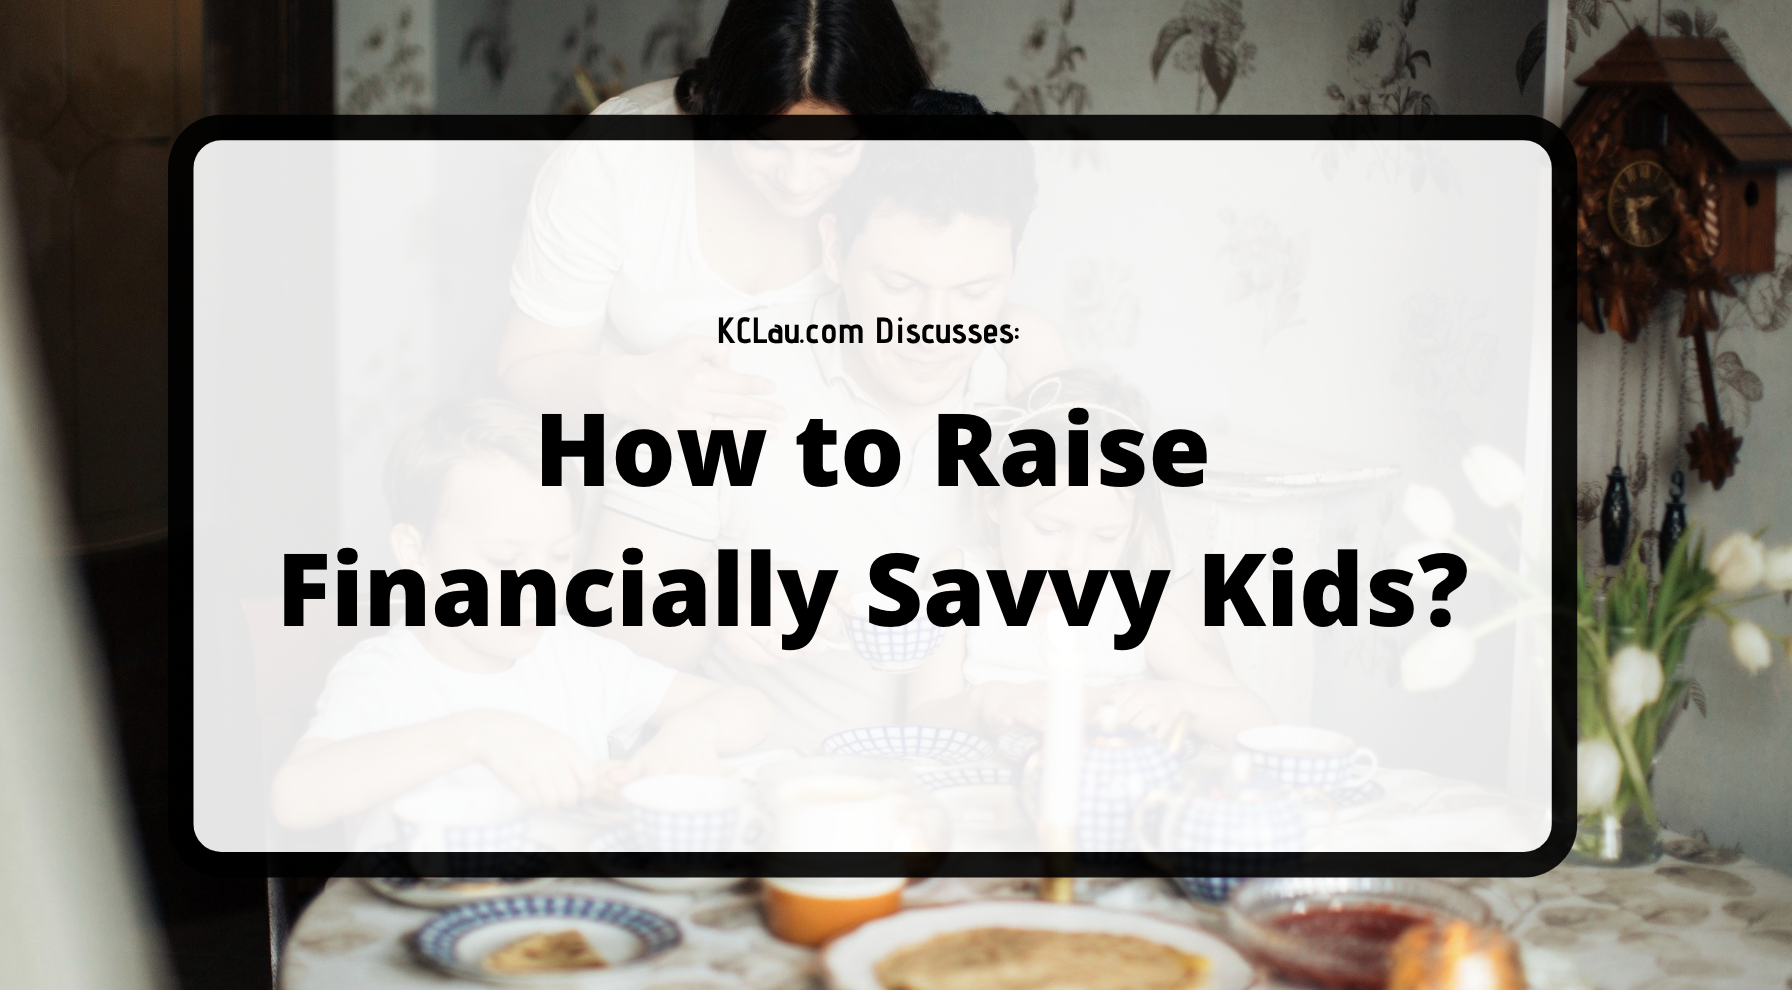 How to Raise Financially Savvy Kids